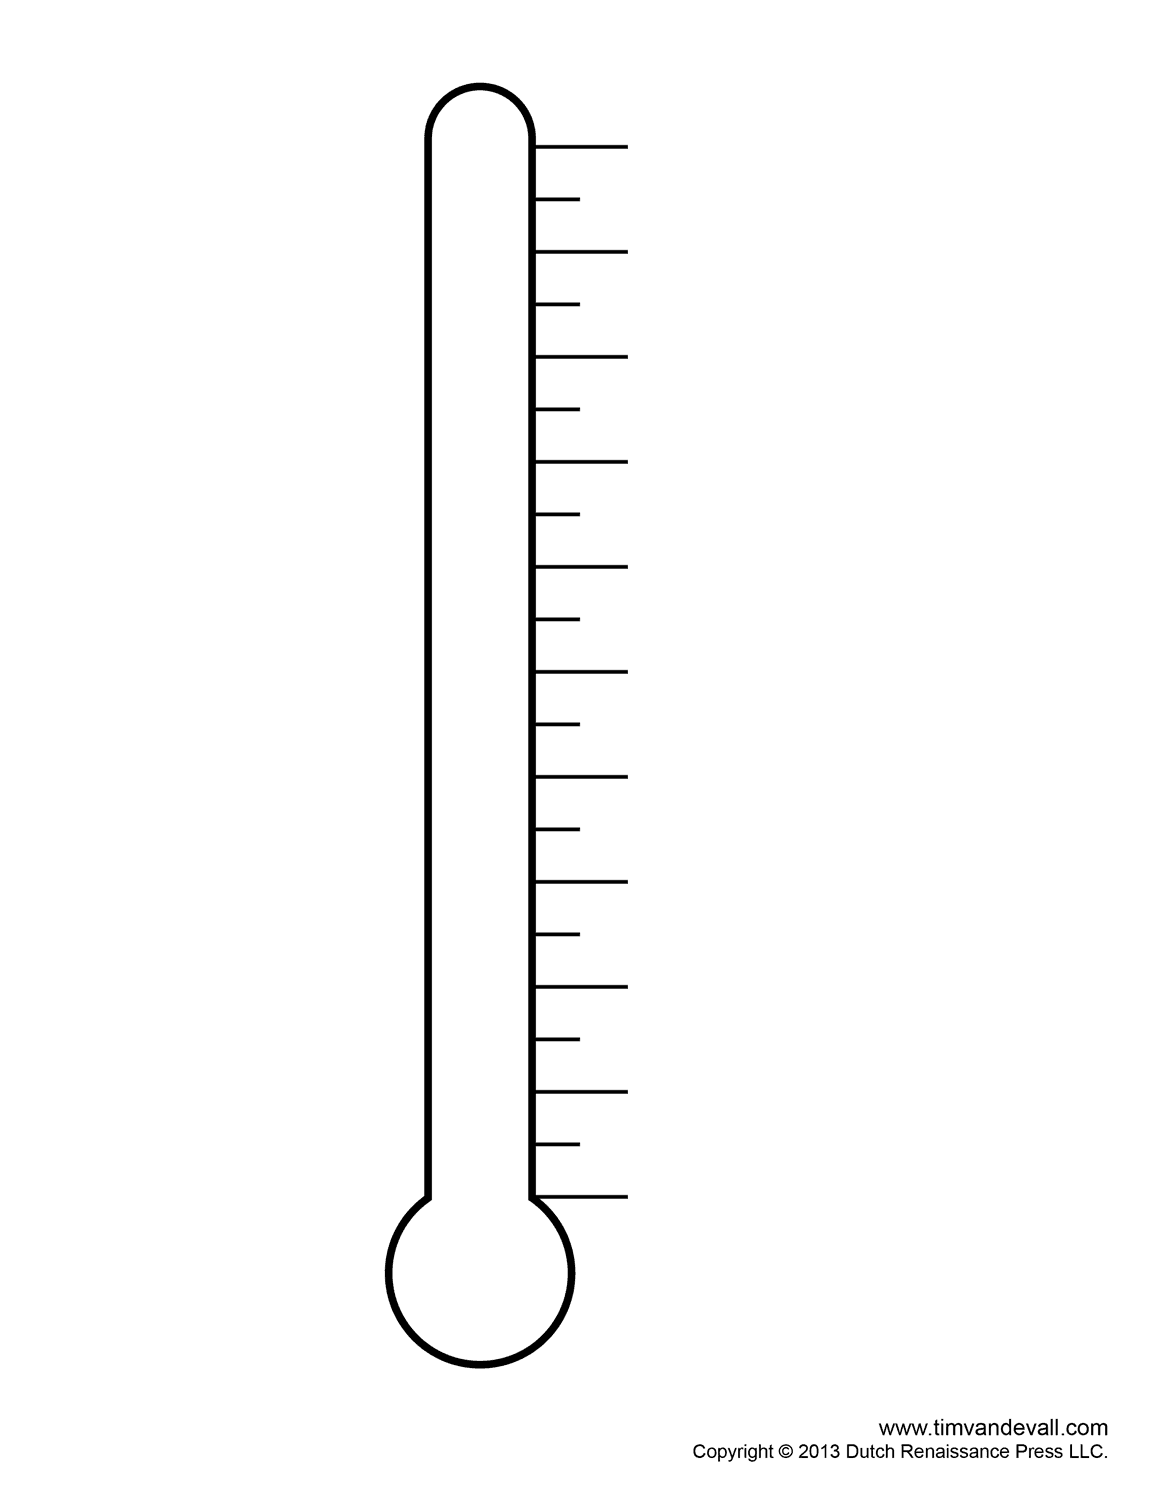 Blank Thermometer Template For Teachers Thermometer images feature